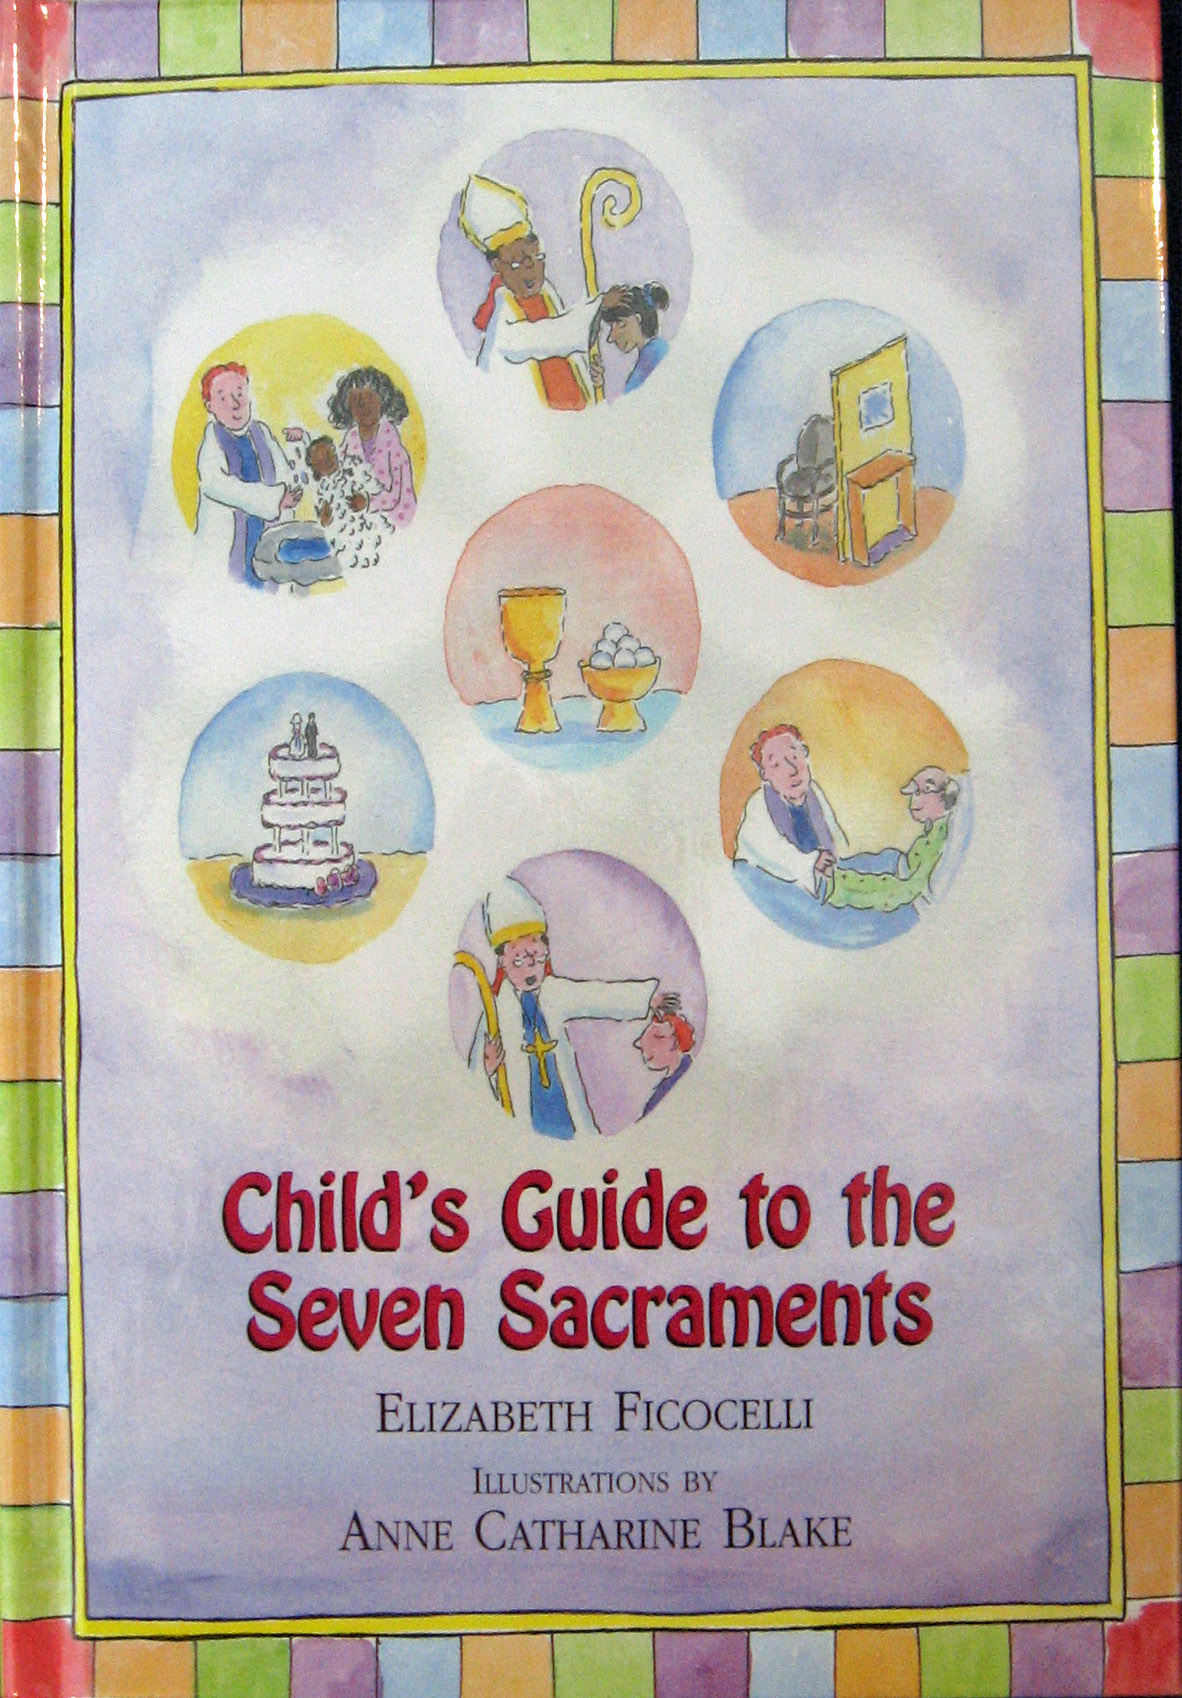 Child's Guide to Seven Sacraments by Elizabeth Ficocelli 108-9780809167234